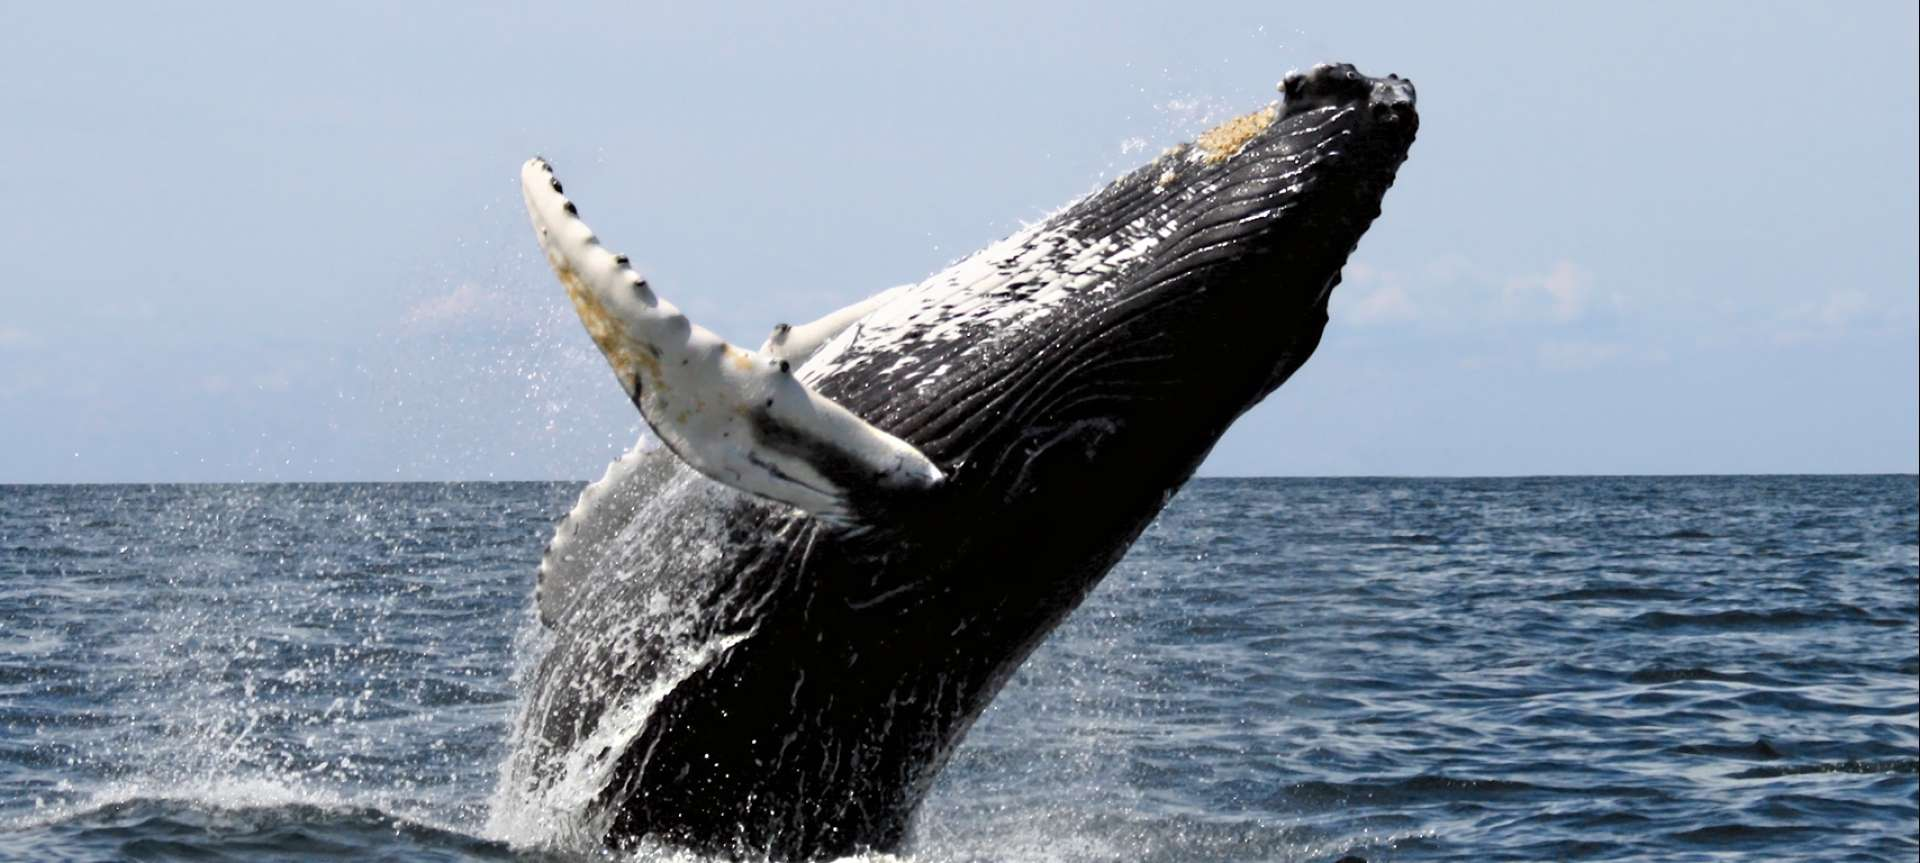 August is a great time for whale spotting